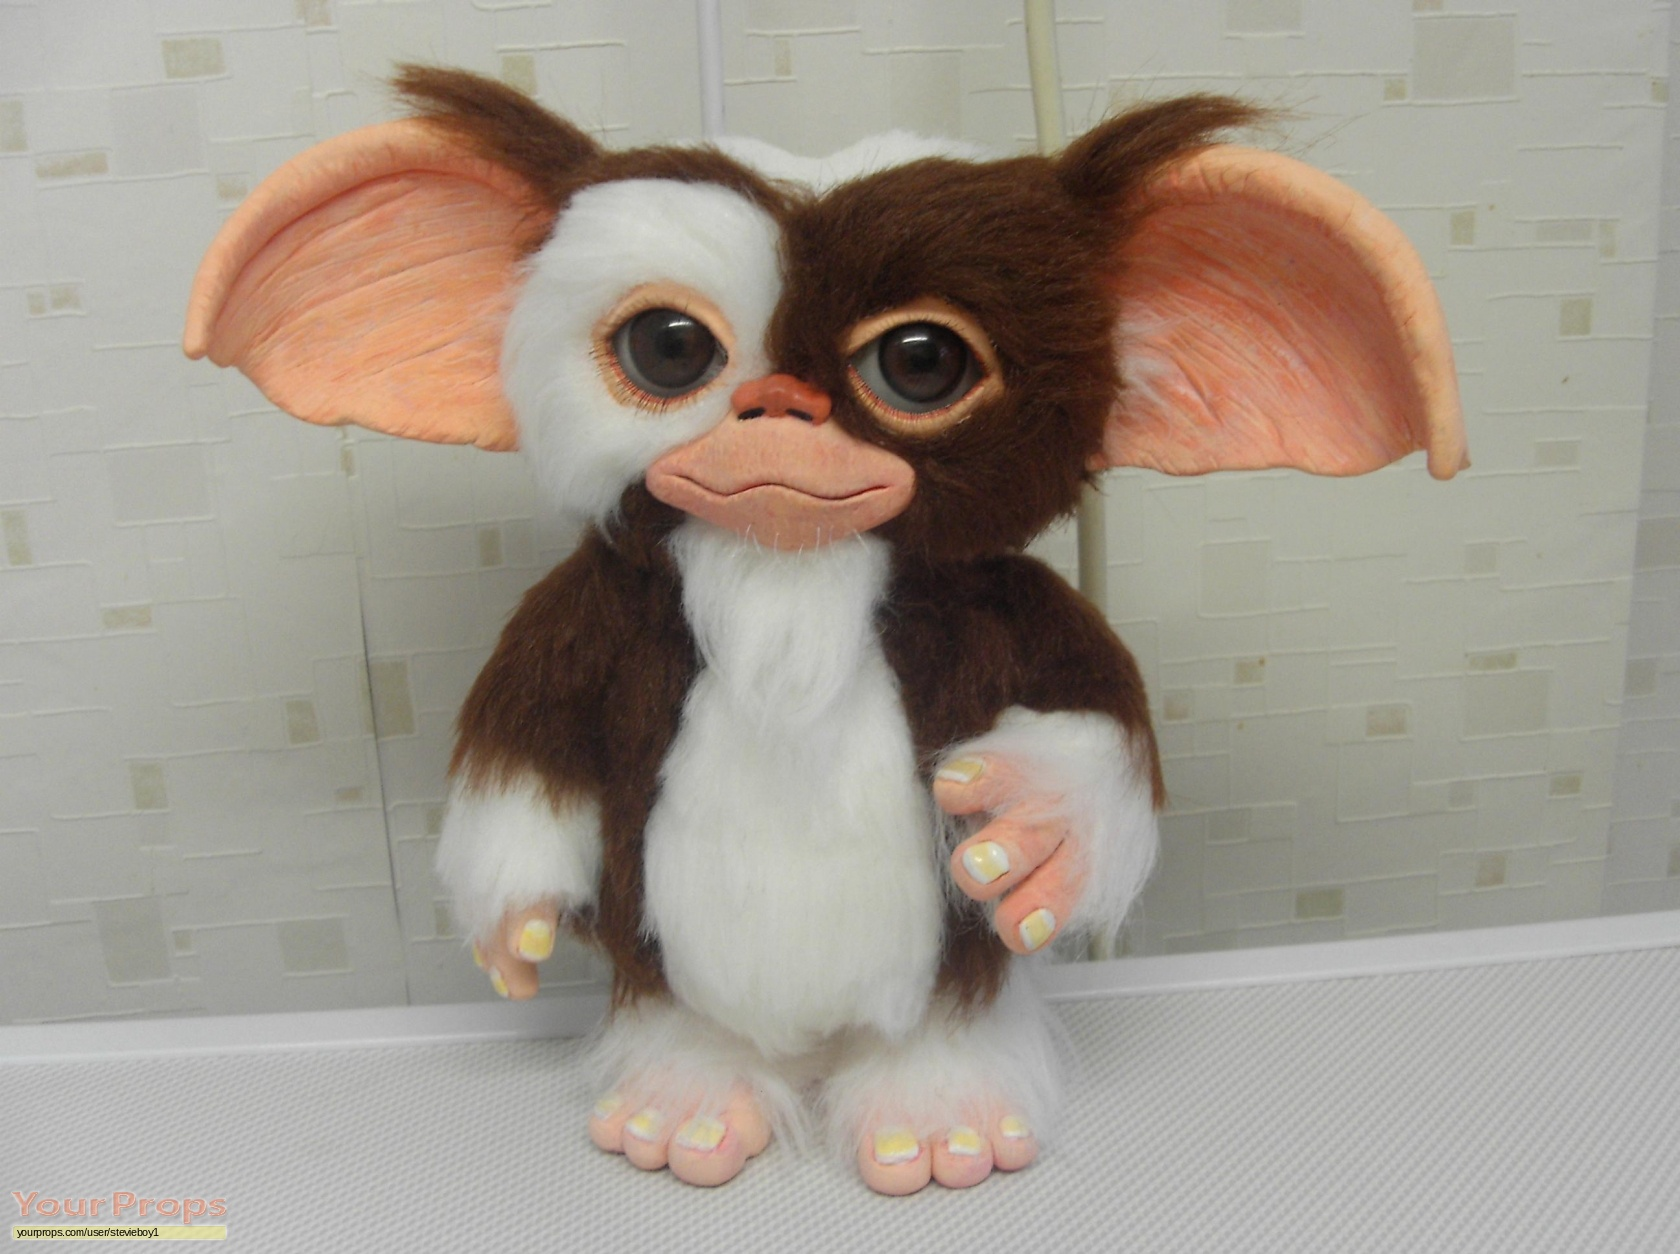 Gremlins 2: The New Batch Photos - Gremlins 2: The New ...